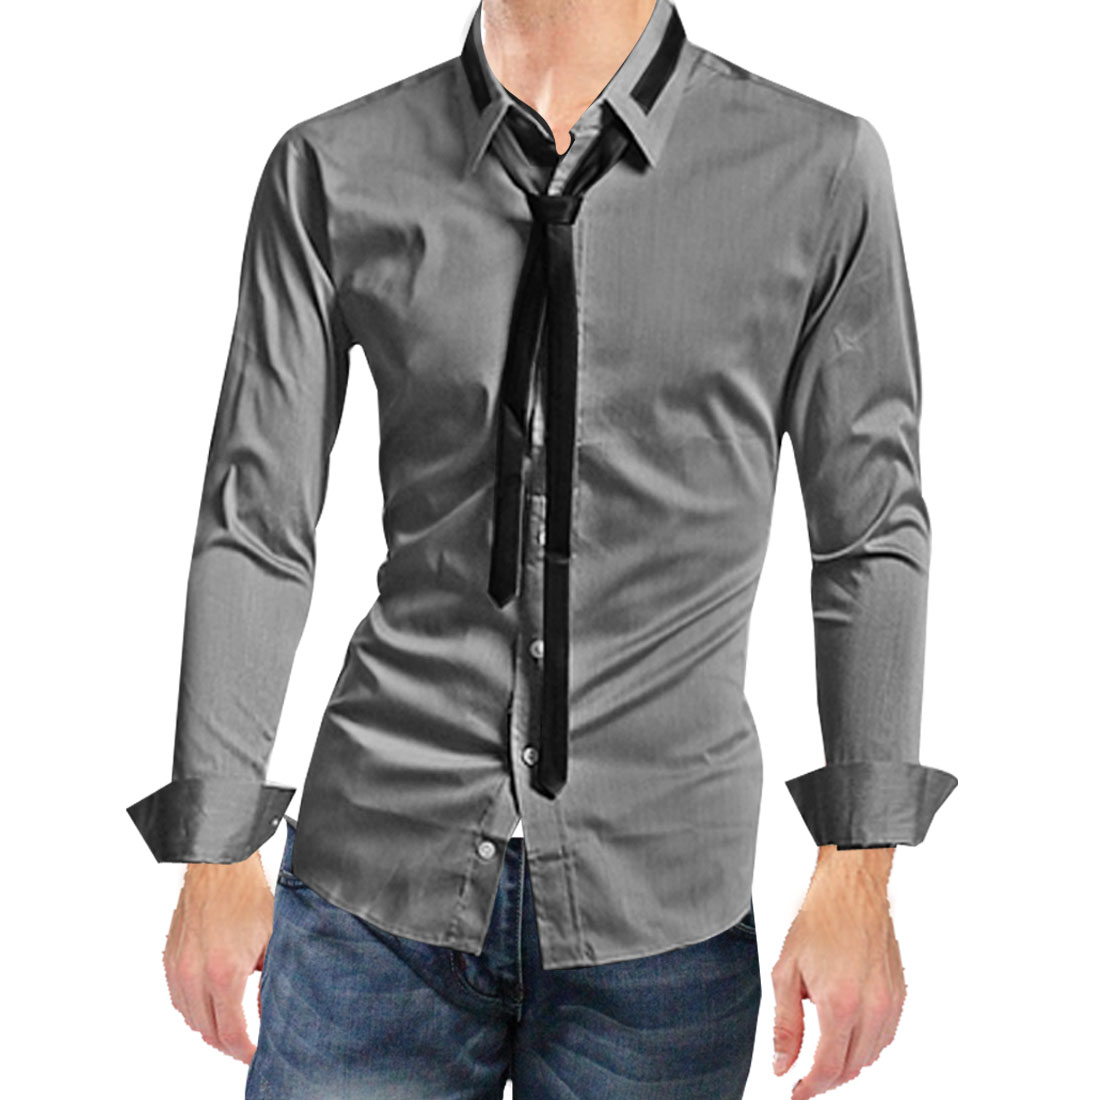 Azzuro Men's Stylish Long Sleeve Point Collar Button Closure Simple Shirt